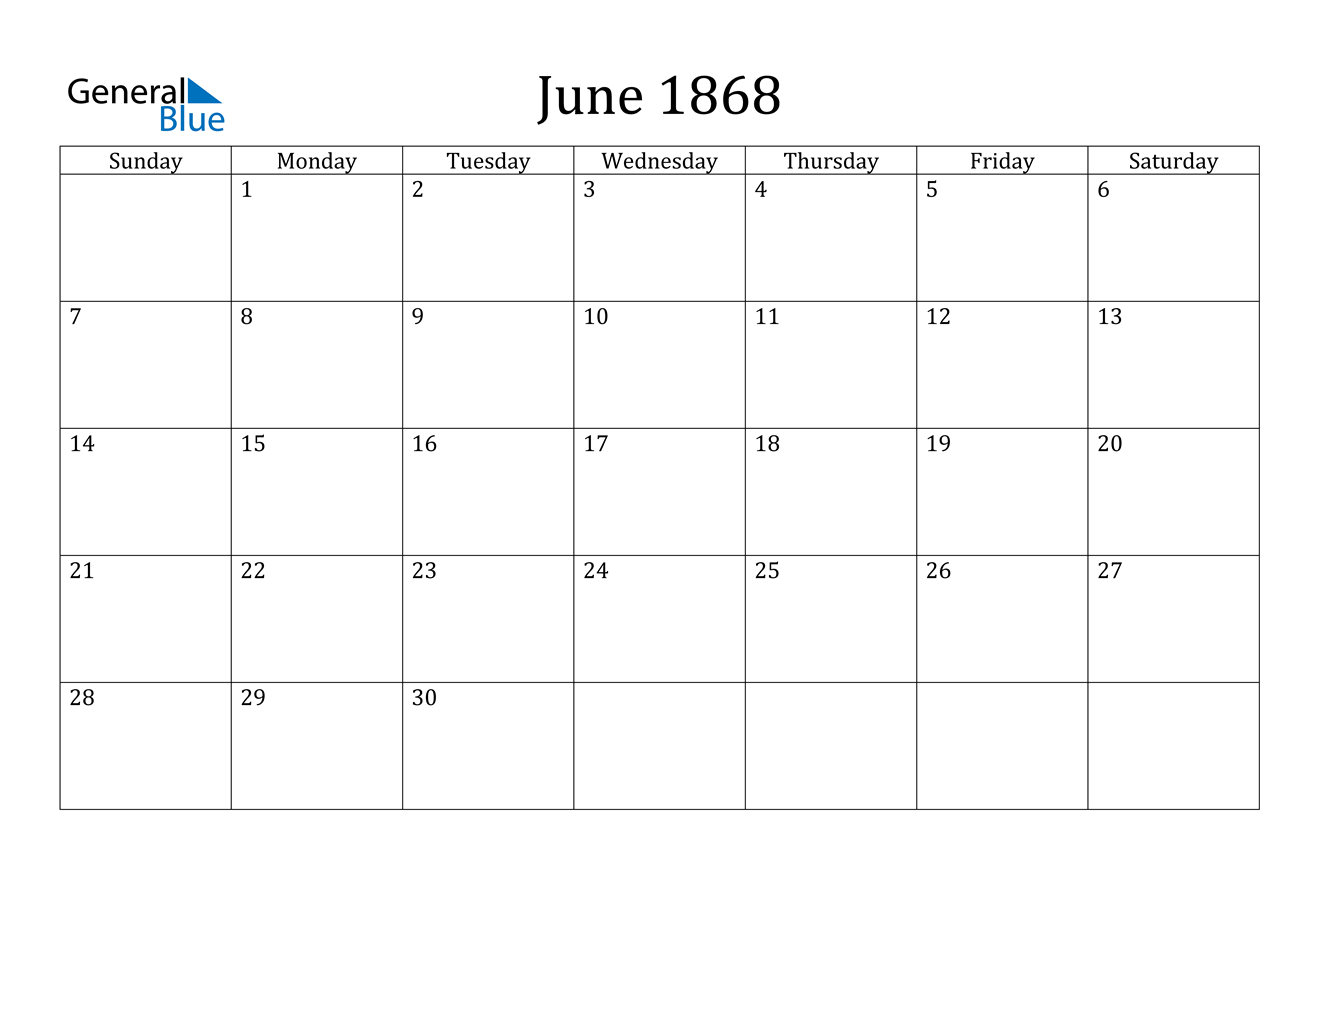 Image of June 1868 Calendar